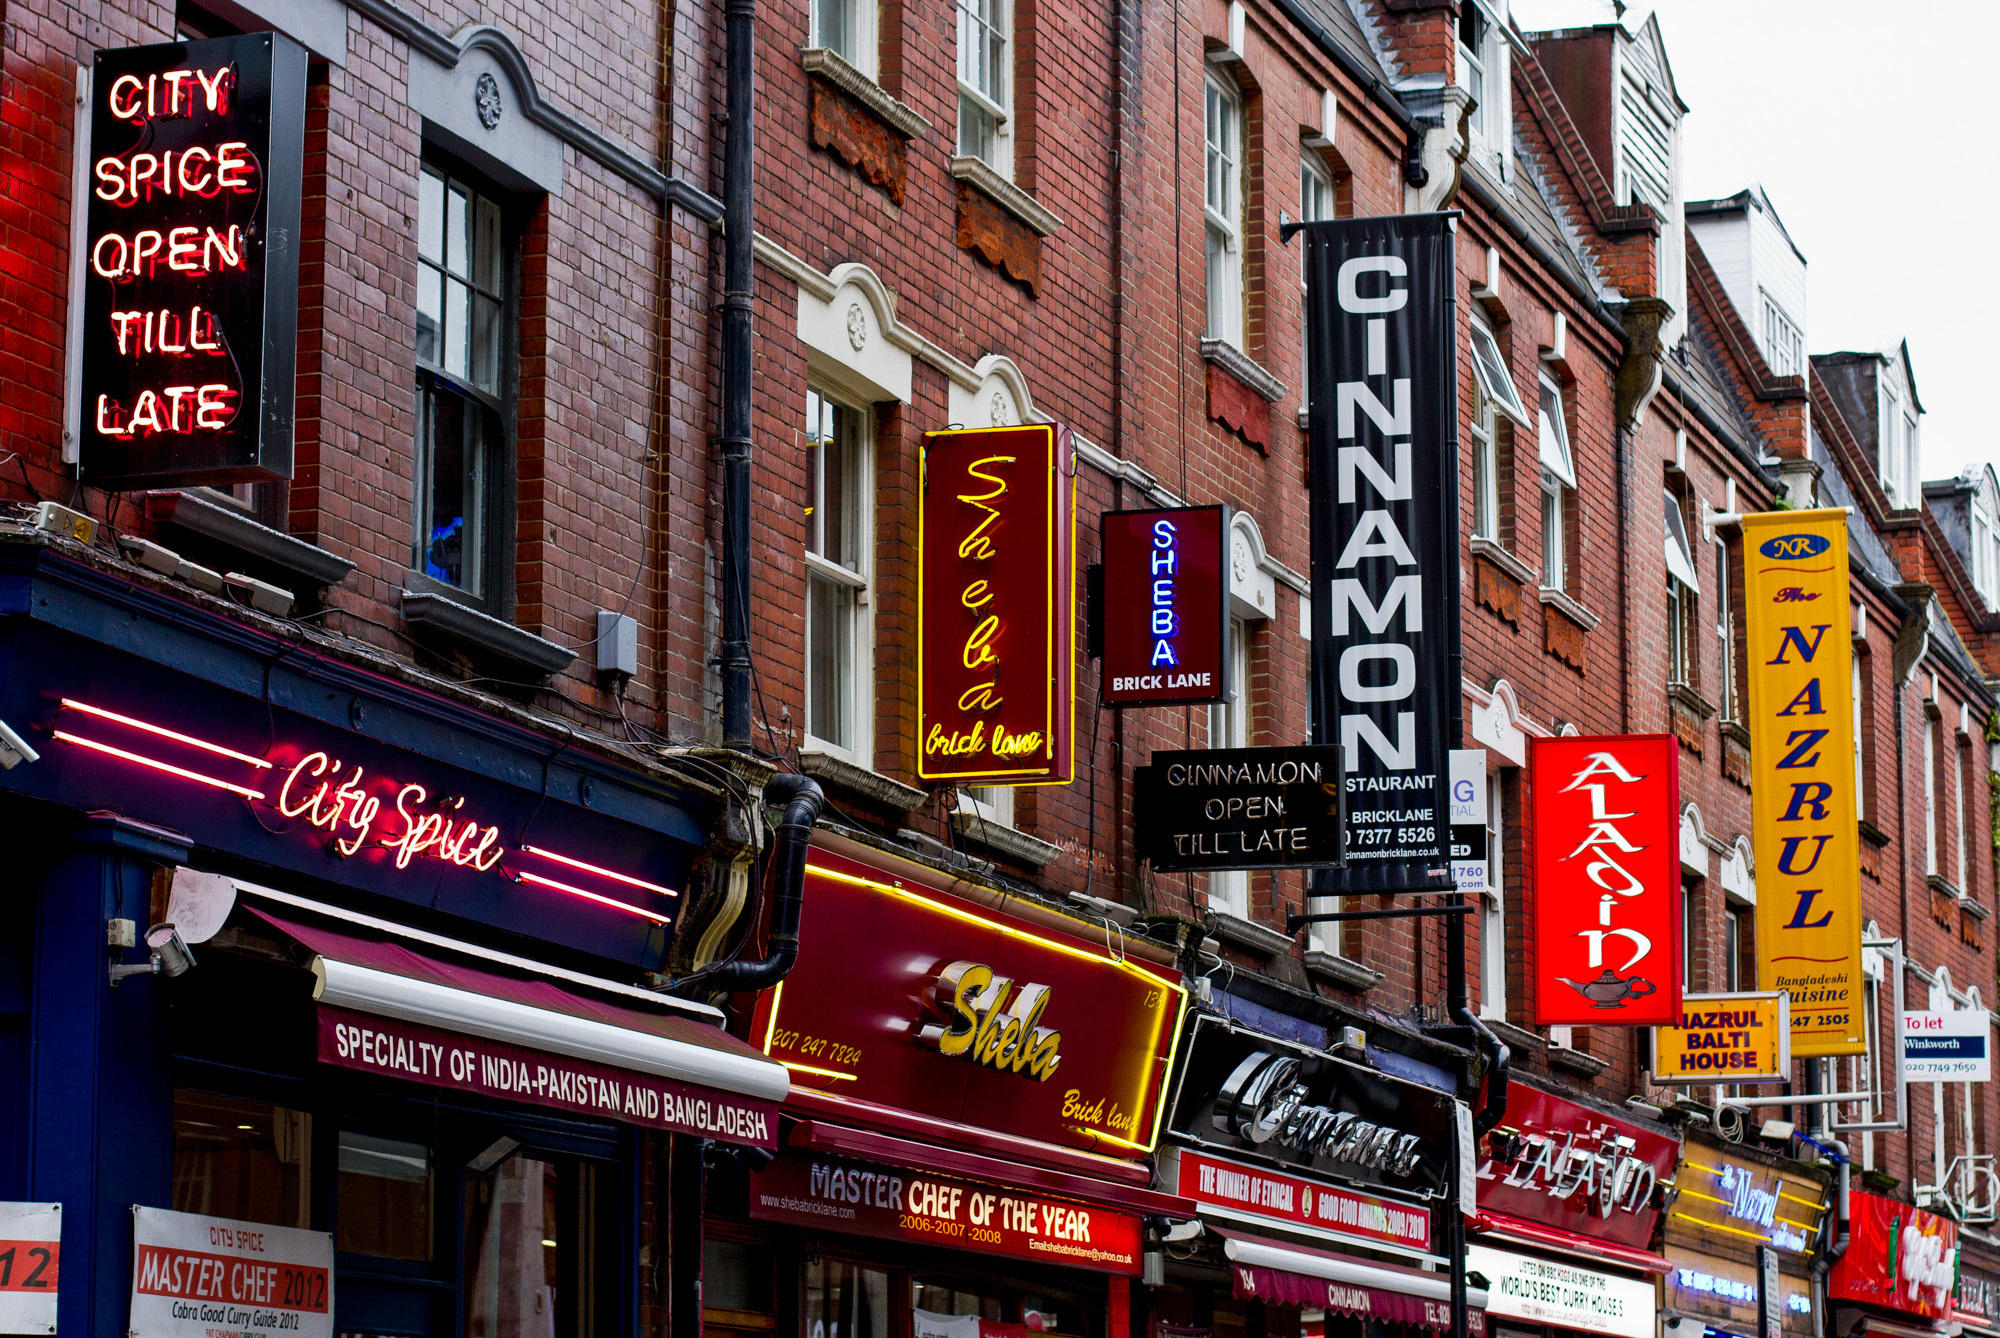 Brick Lane Is A Street In The London Borough Of Tower Hamlets It Famous For Its Many Curry Houses